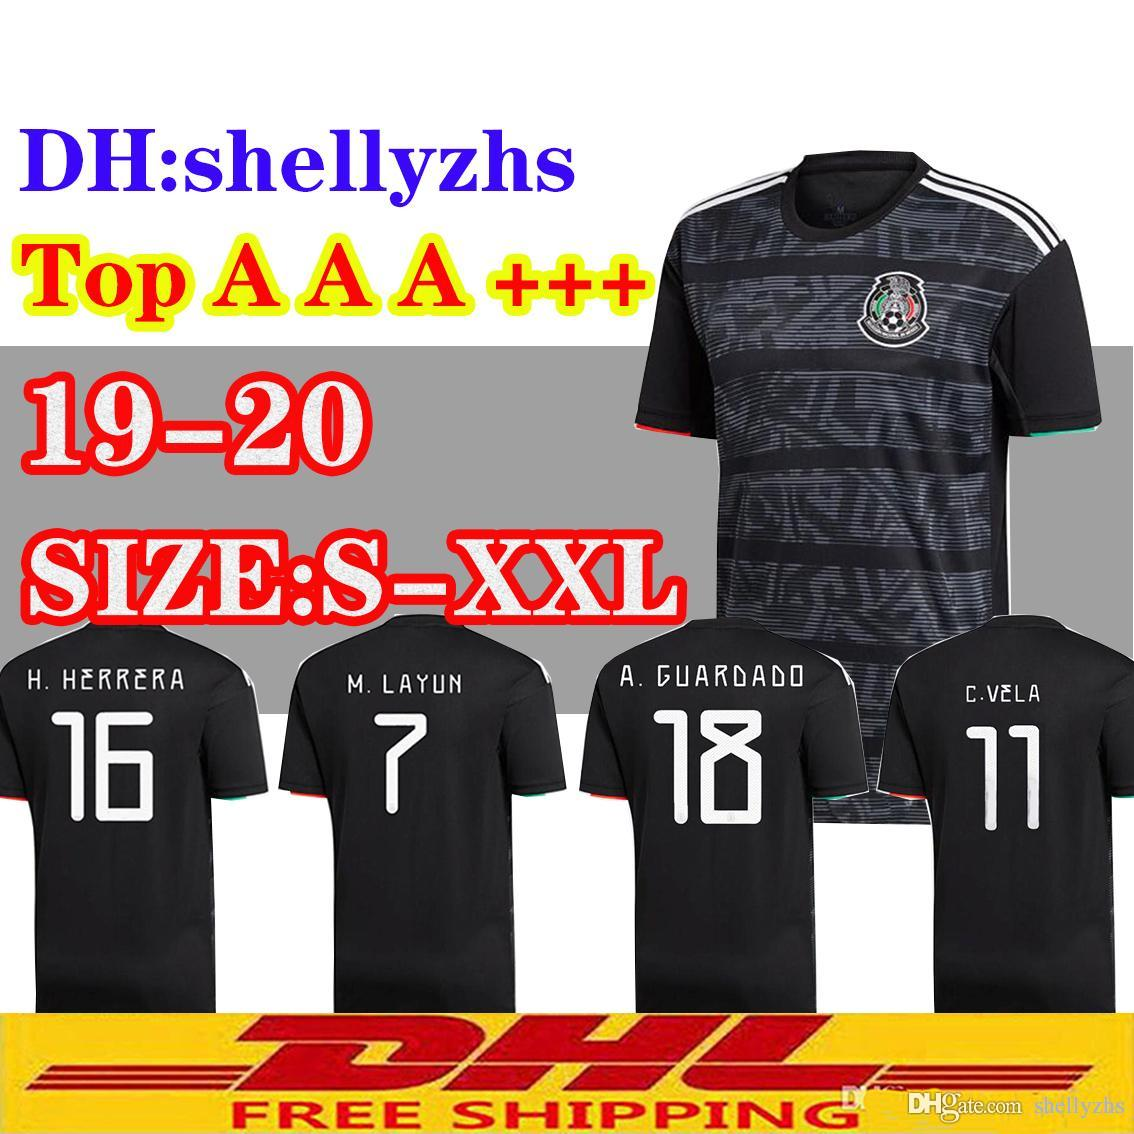 88842b8b5 2019 DHL 2019 20 Mexico Soccer Jerseys 2019 2020 Mexico Away Black Football  Shirt Size Can Be Mixed Batch. From Shellyzhs